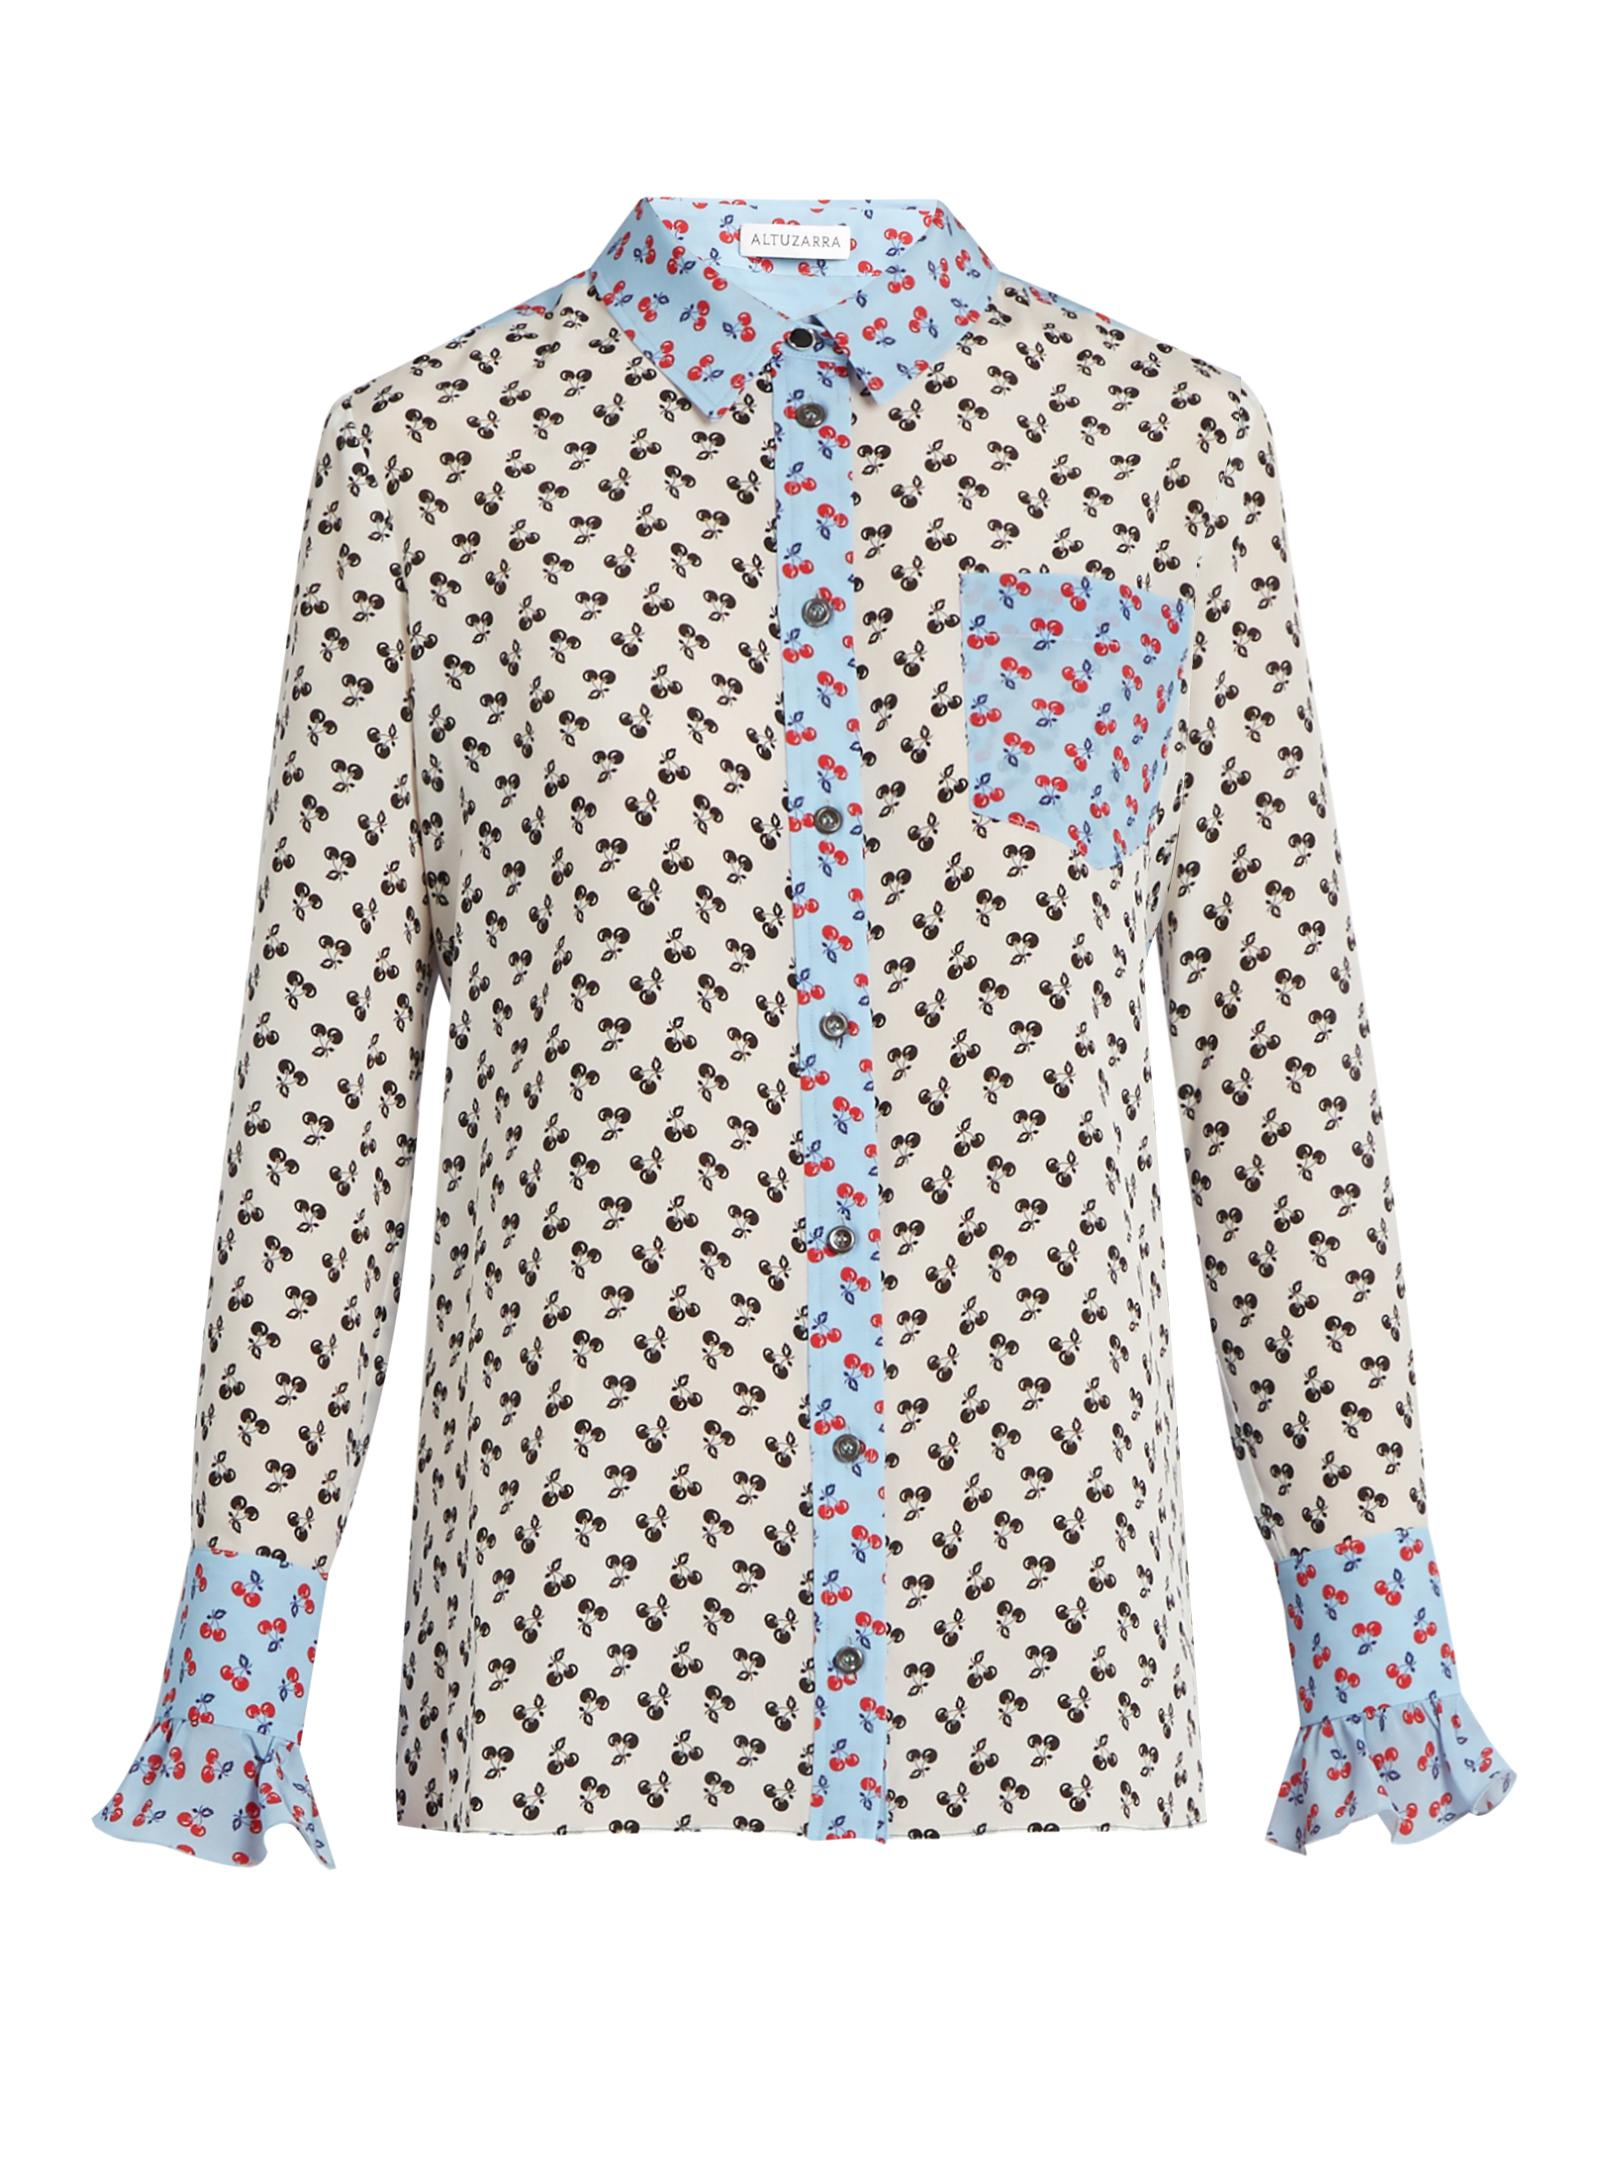 Shopping Online Cheap Online With Paypal Low Price SHIRTS - Shirts Altuzarra Discount Hot Sale Wholesale Online jTDh2h